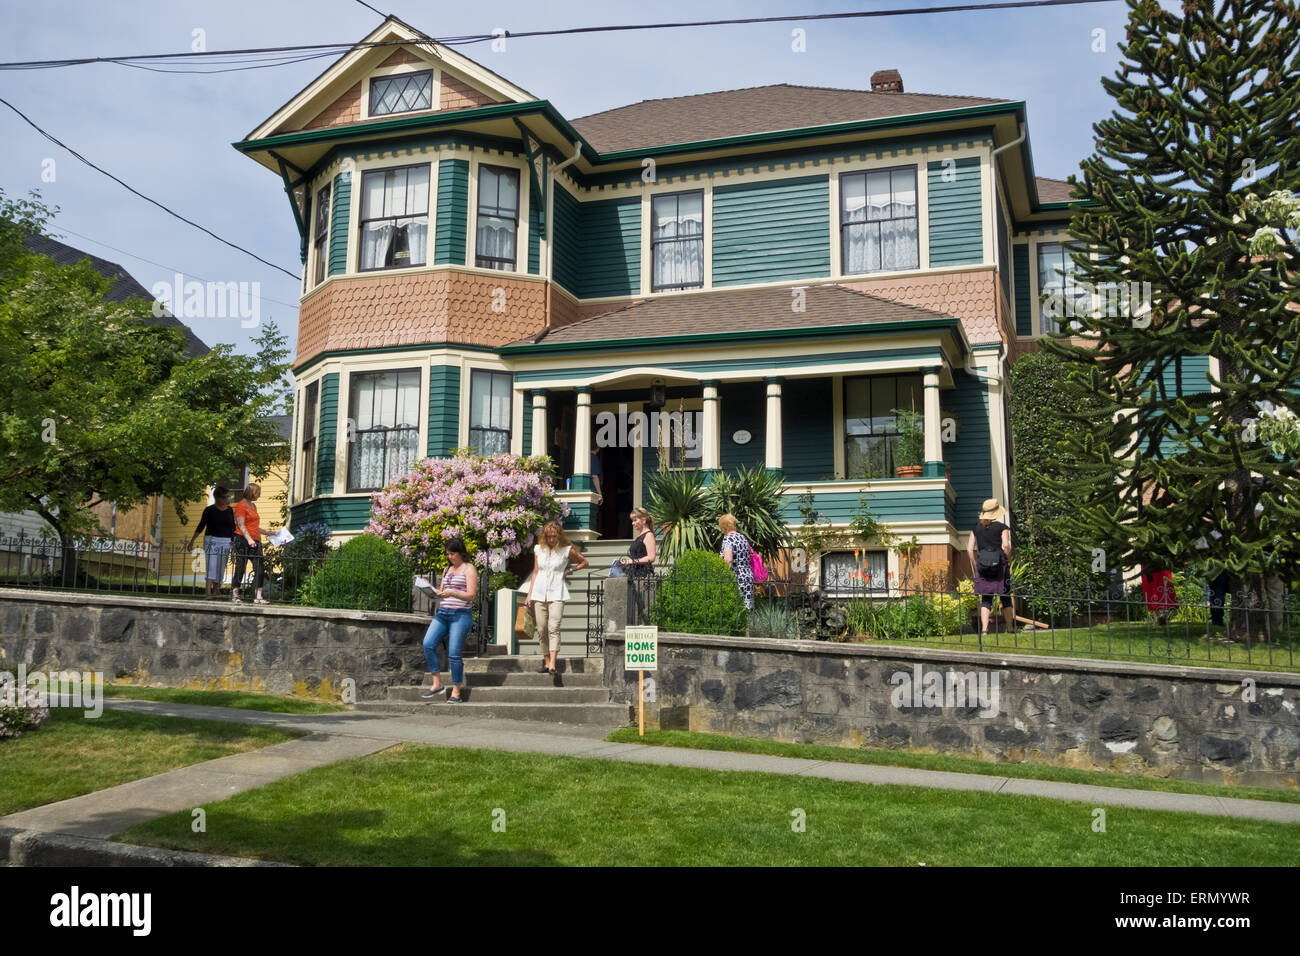 People Visiting One Of The Homes On 2015 Heritage Tour In New Westminster